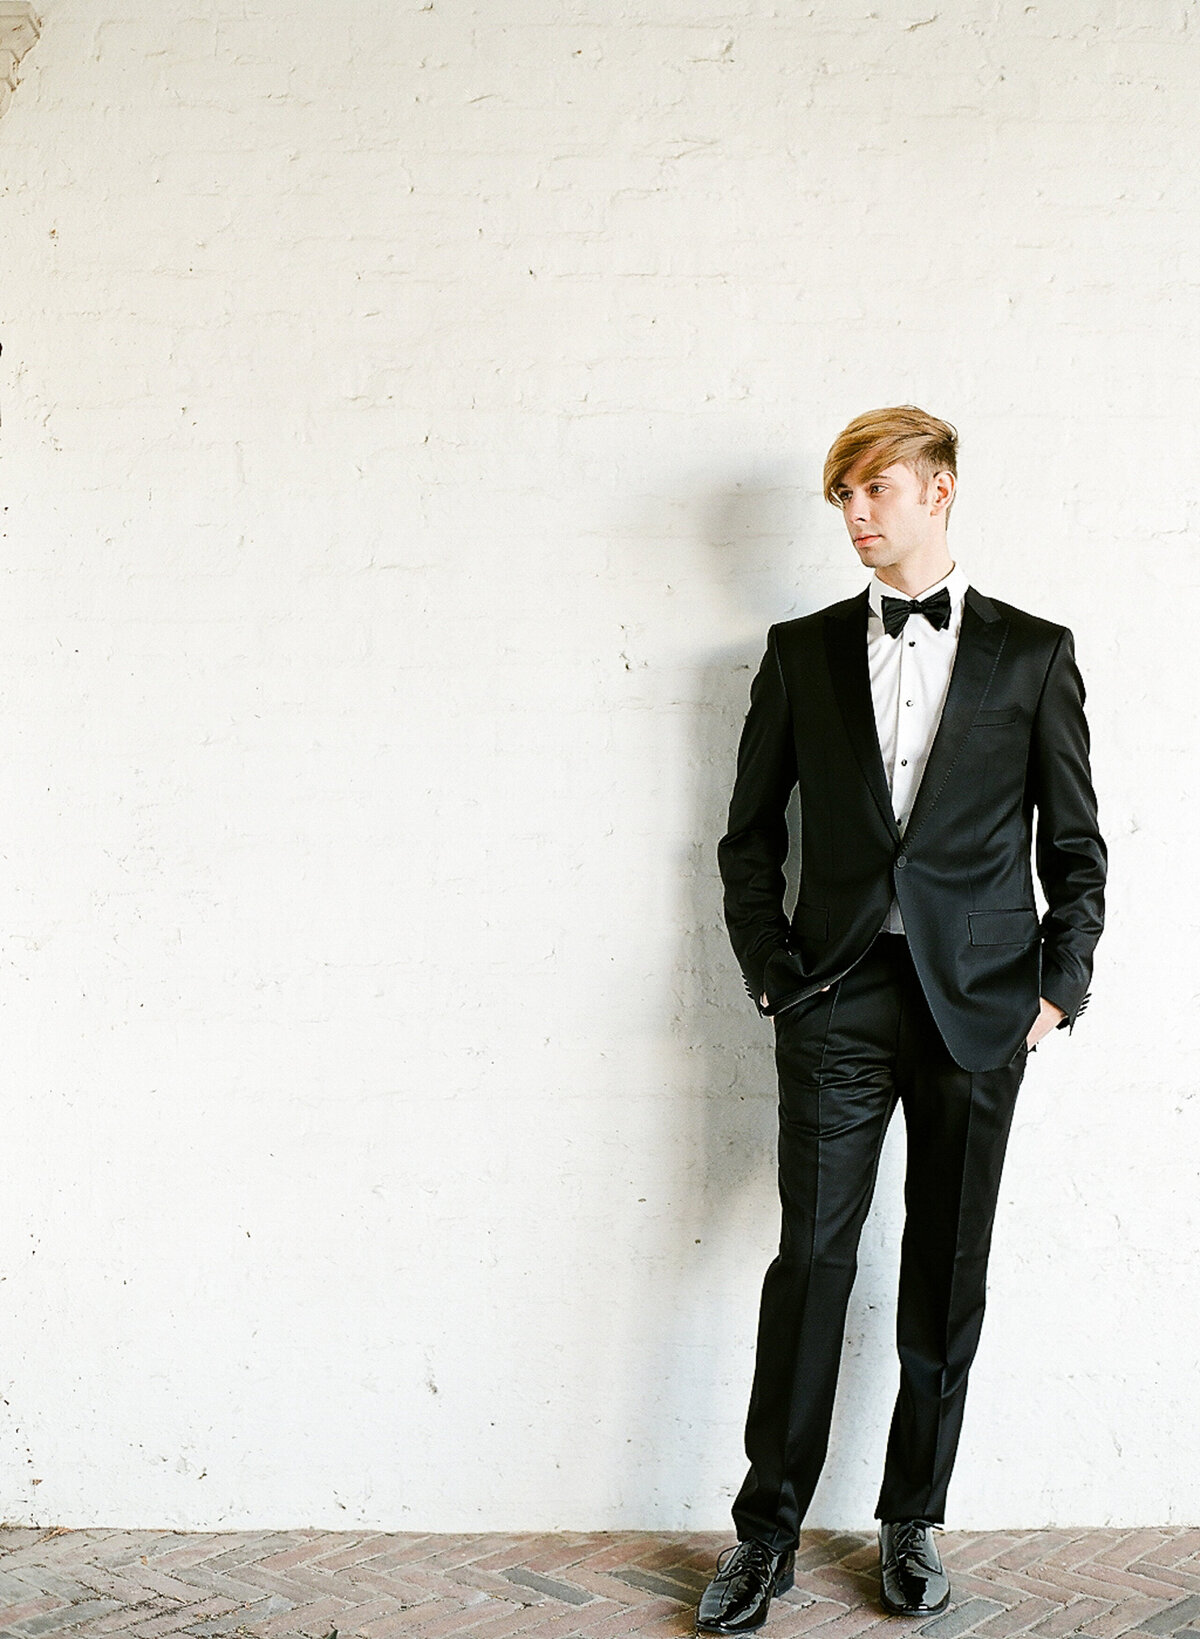 Groom in tux standing against white wall